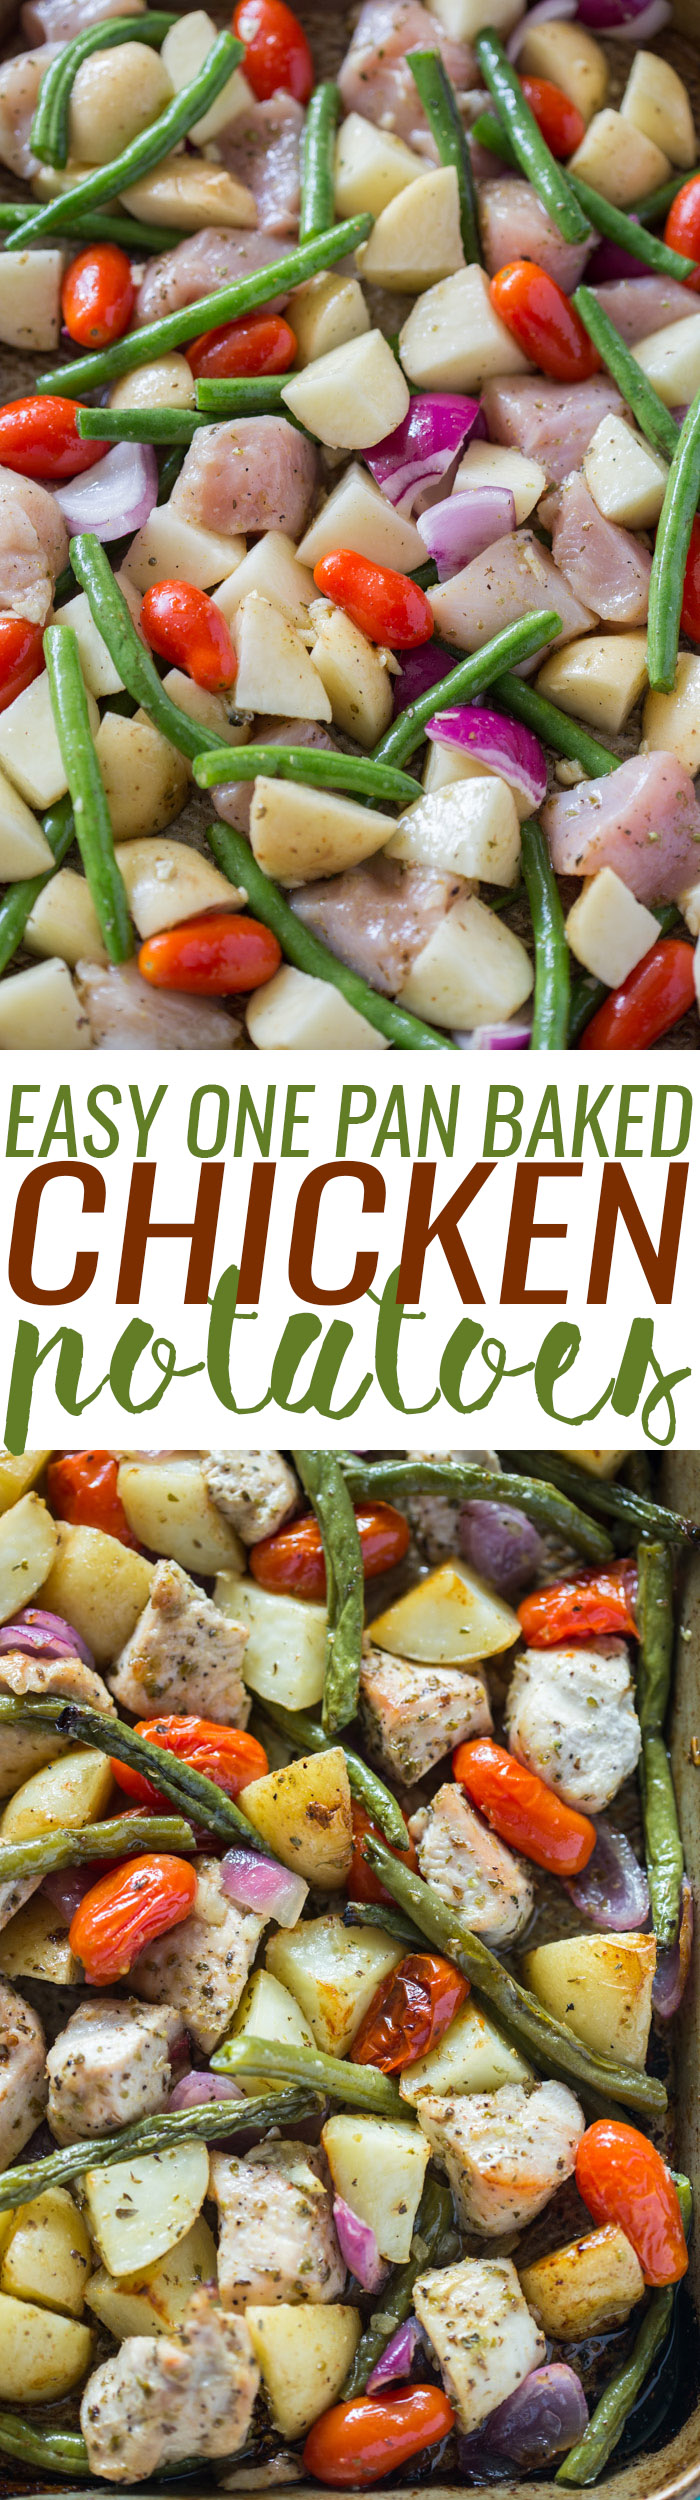 Easy One Pan Roasted Chicken & Potatoes